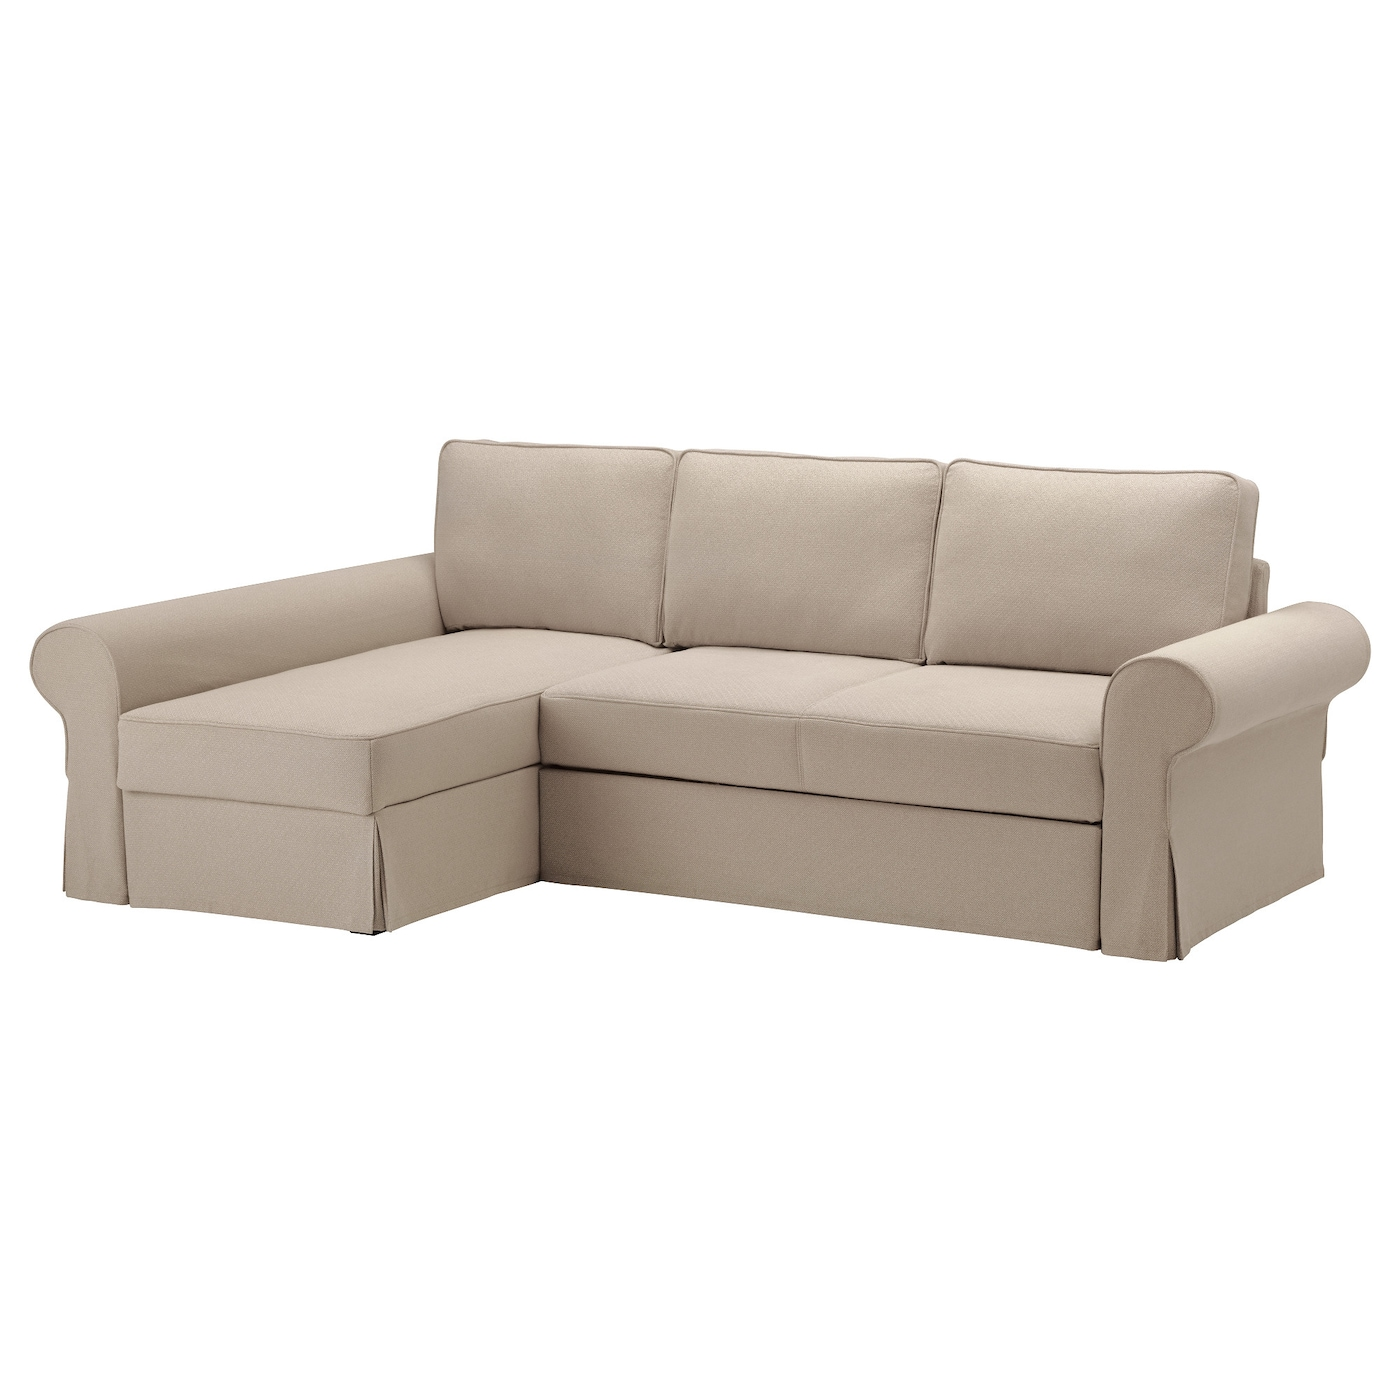 Backabro cover sofa bed with chaise longue hylte beige ikea for Sofa bed cover